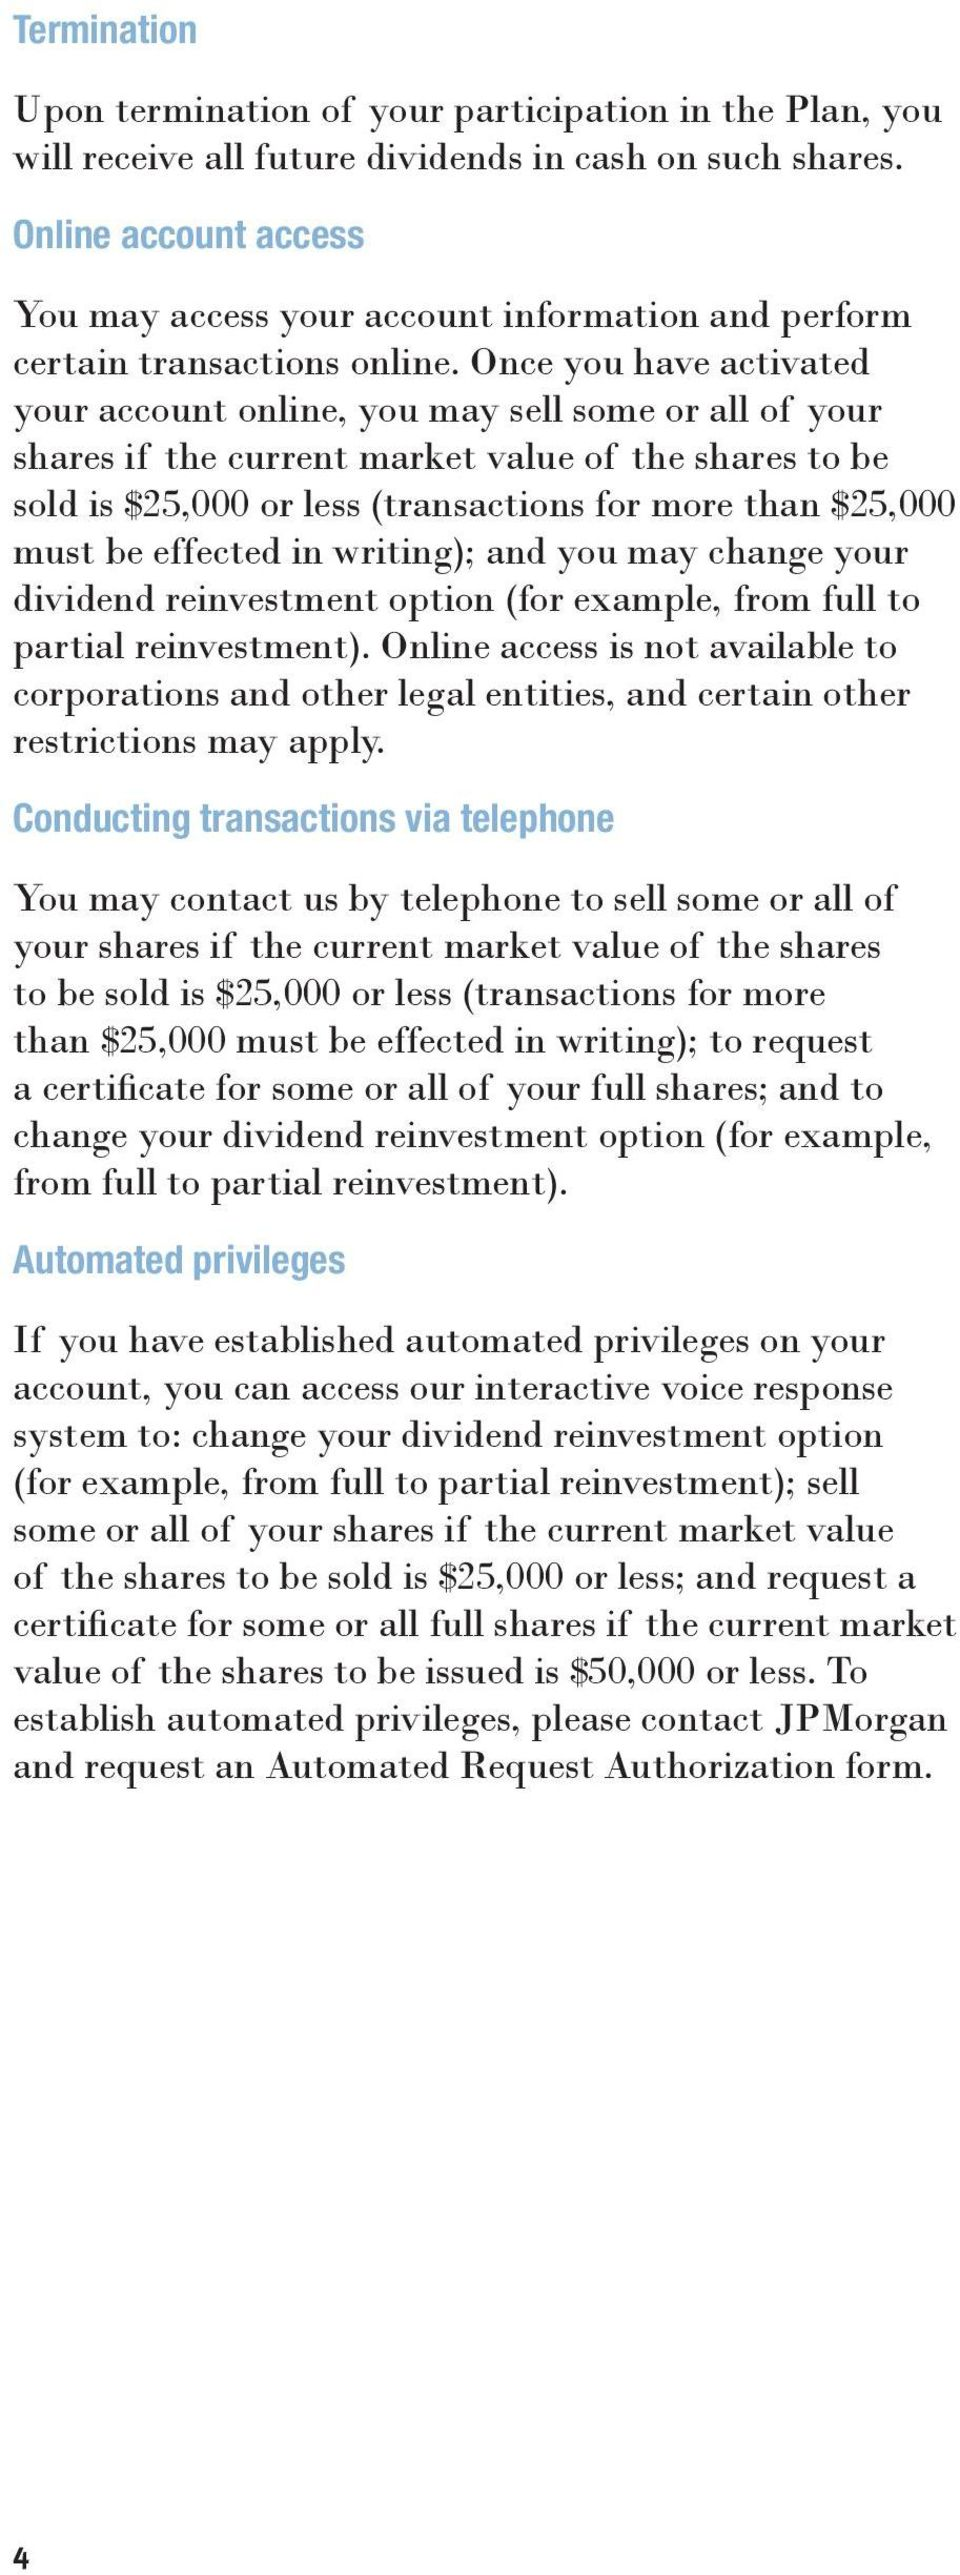 Once you have activated your account online, you may sell some or all of your shares if the current market value of the shares to be sold is $25,000 or less (transactions for more than $25,000 must